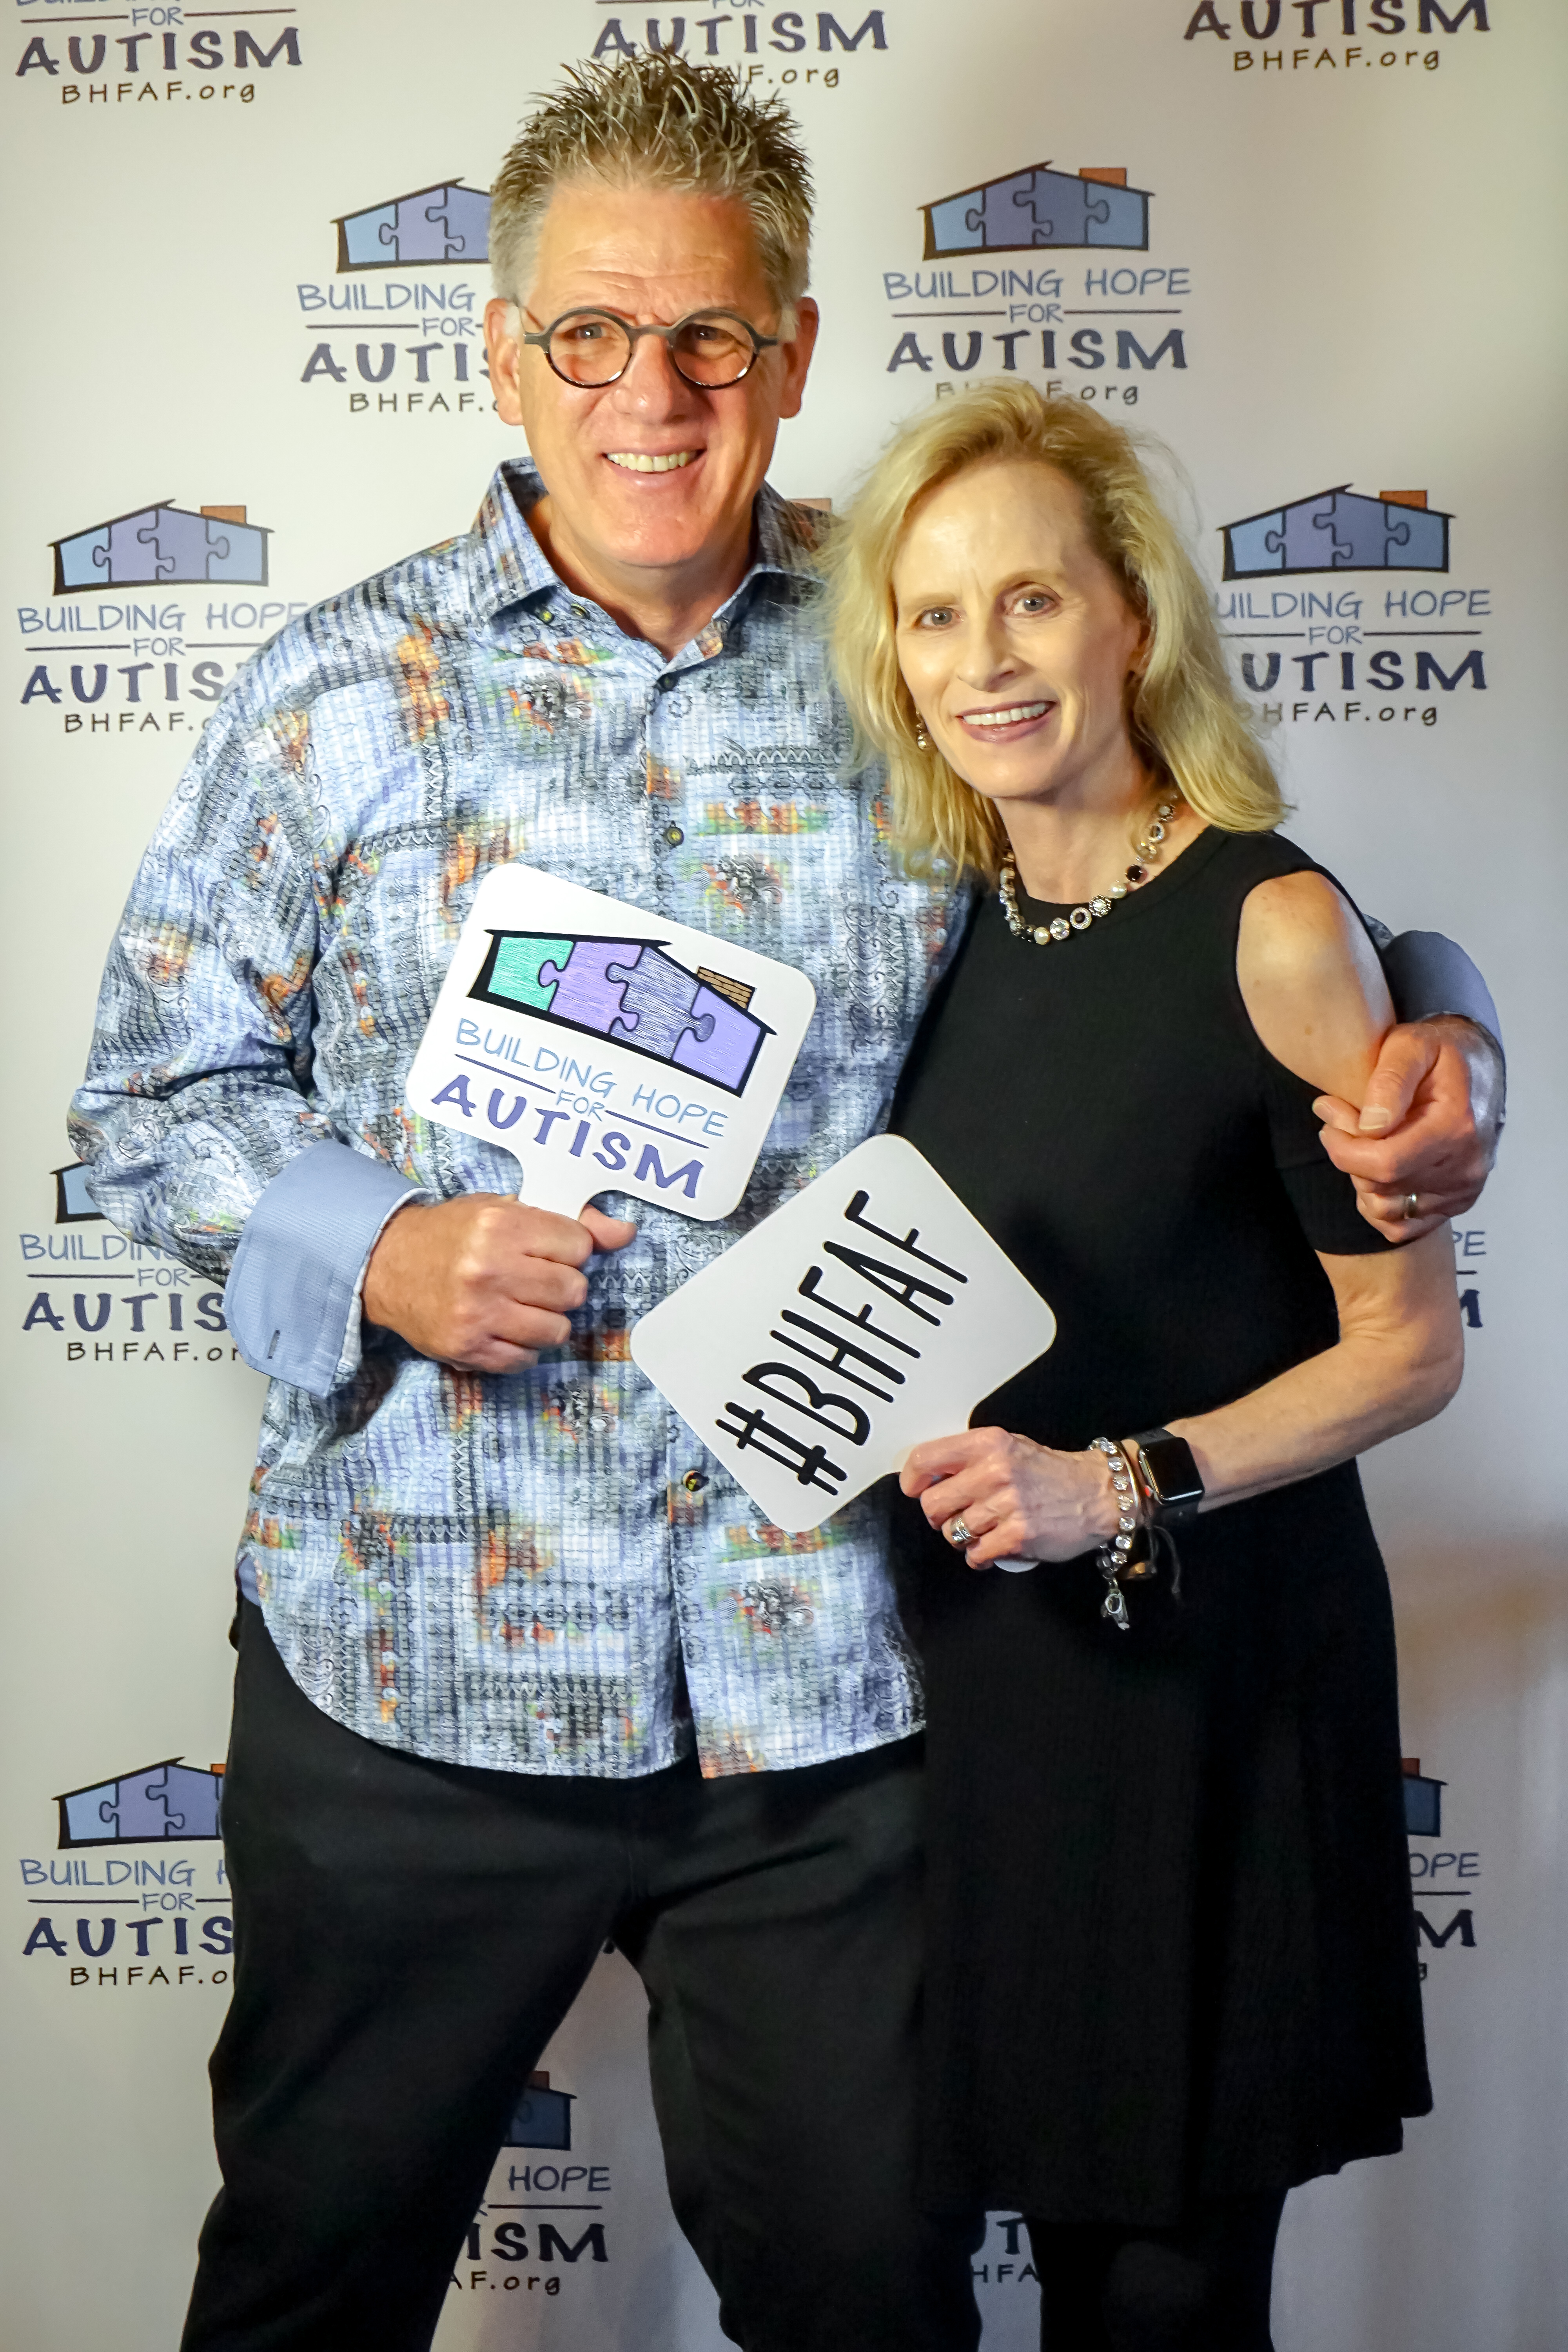 building hope for autism.